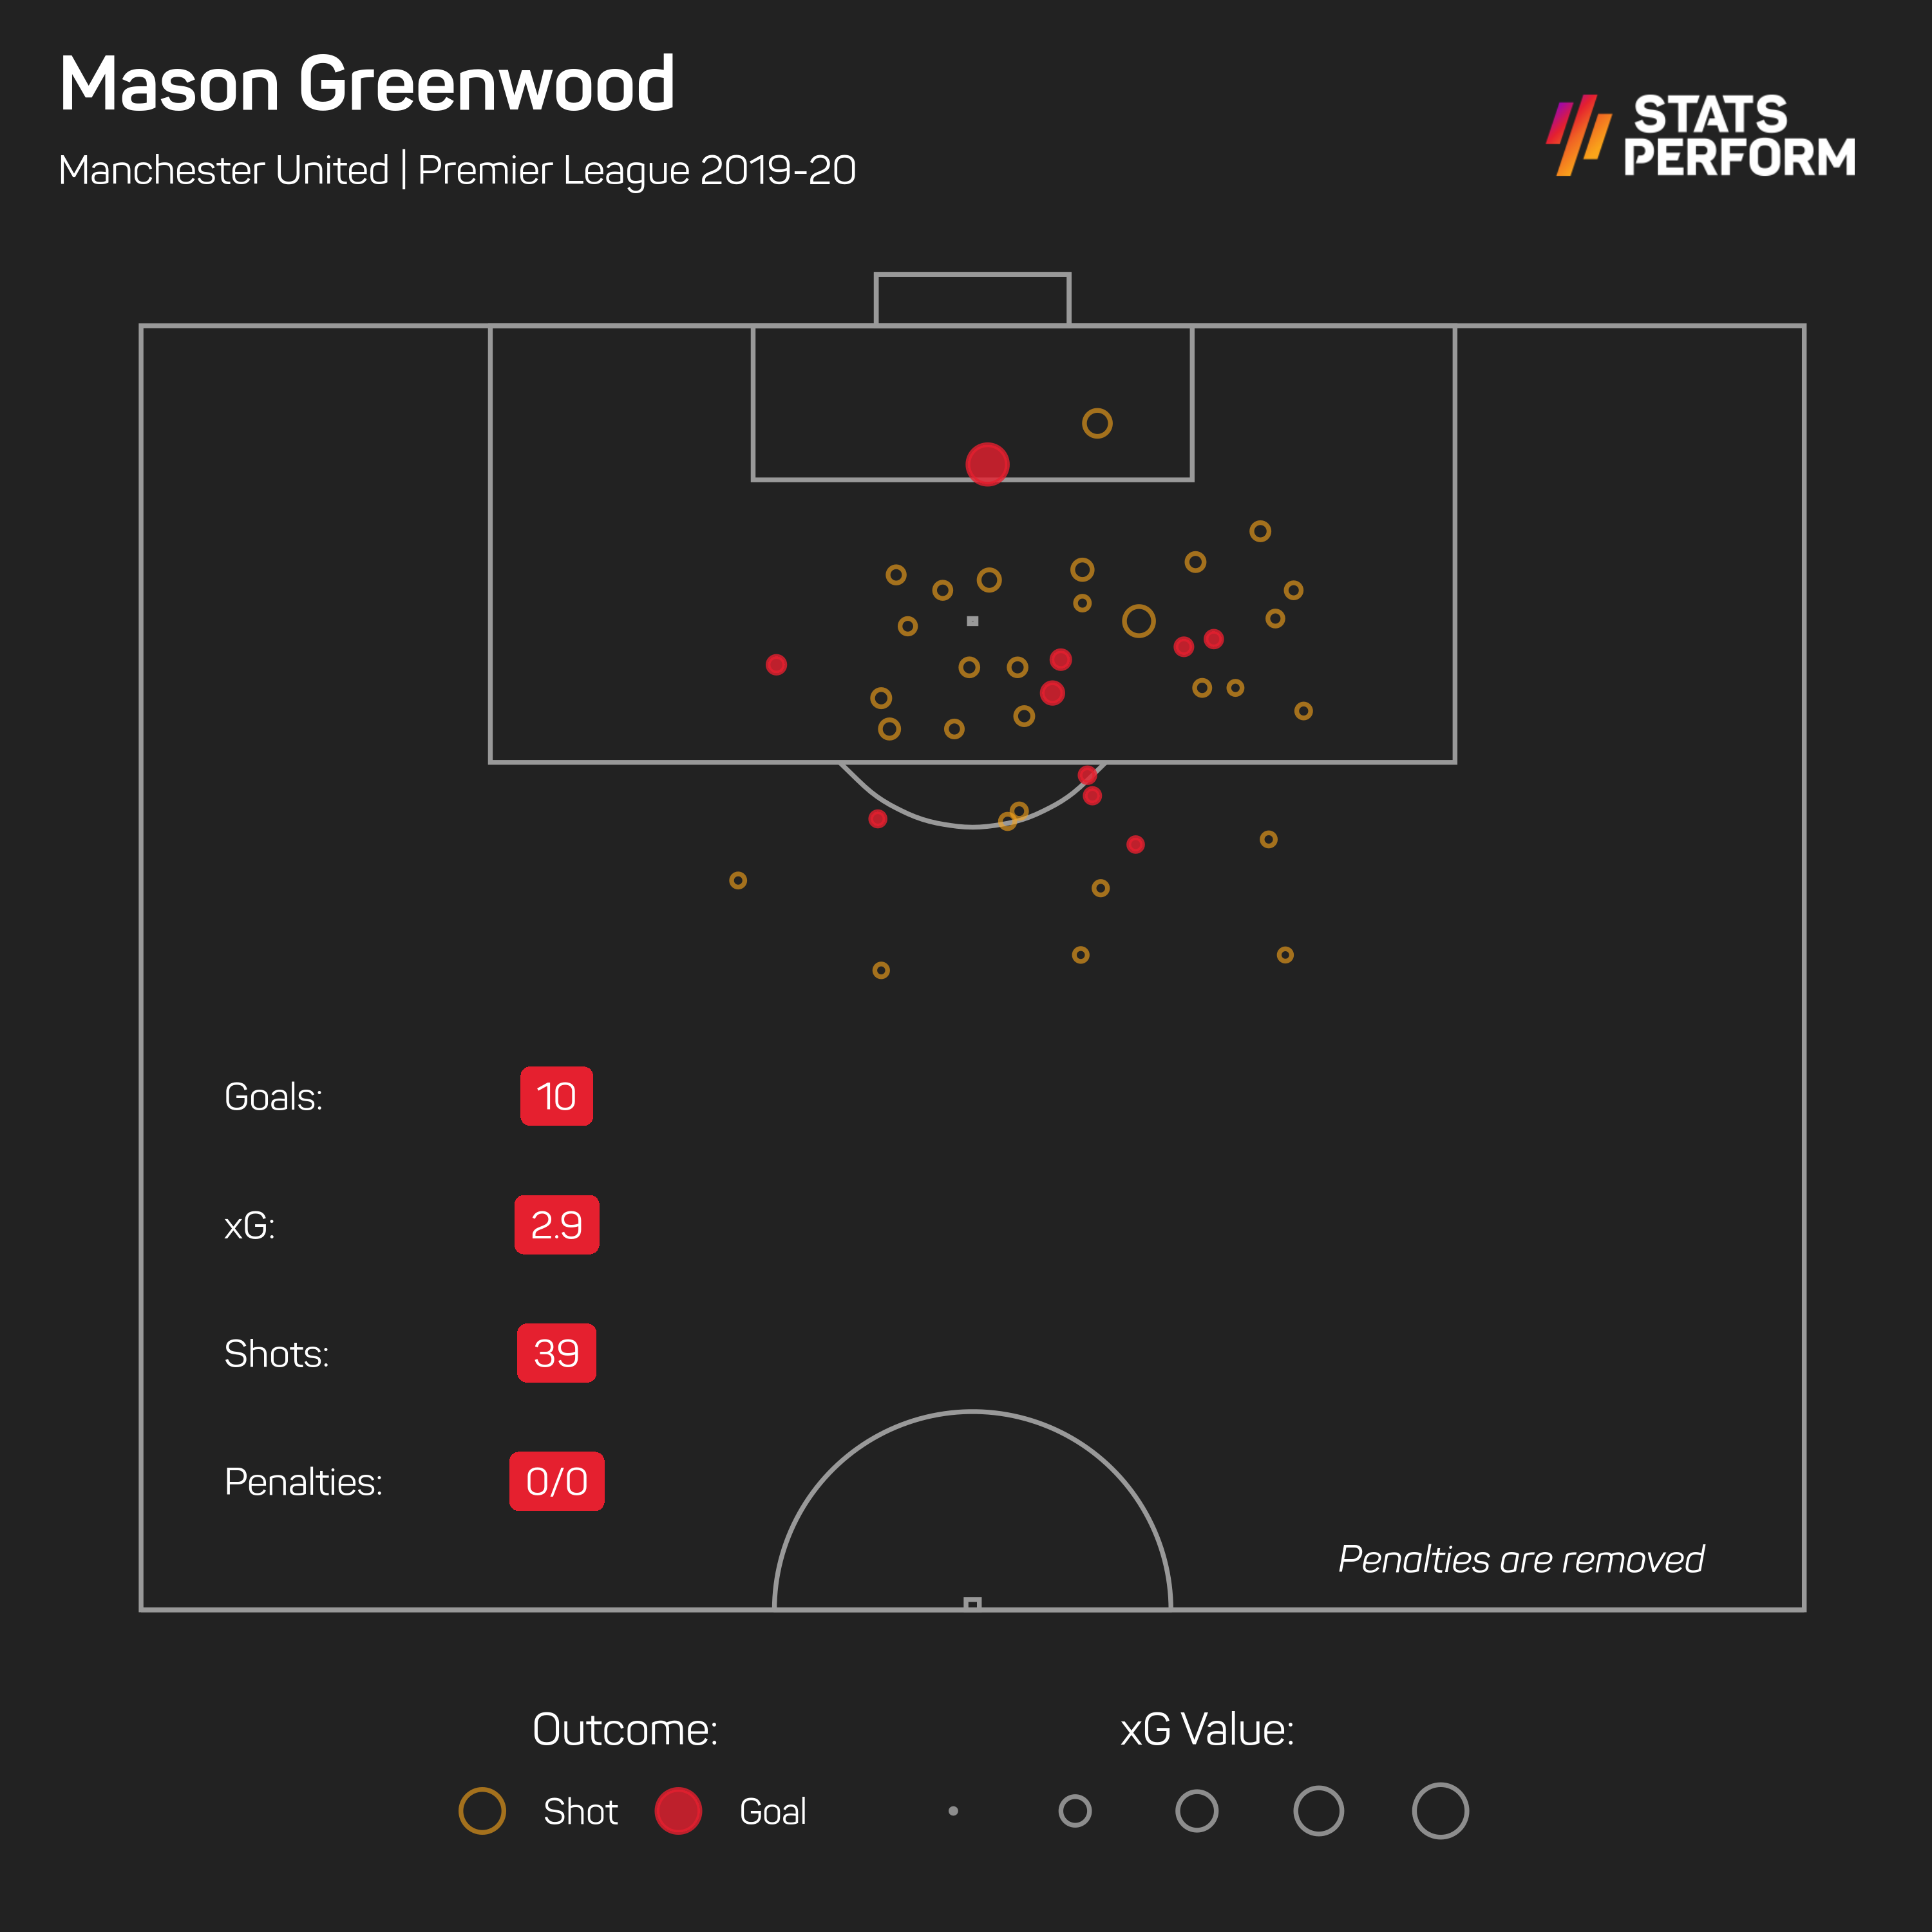 Greenwood was electric in 2019-20